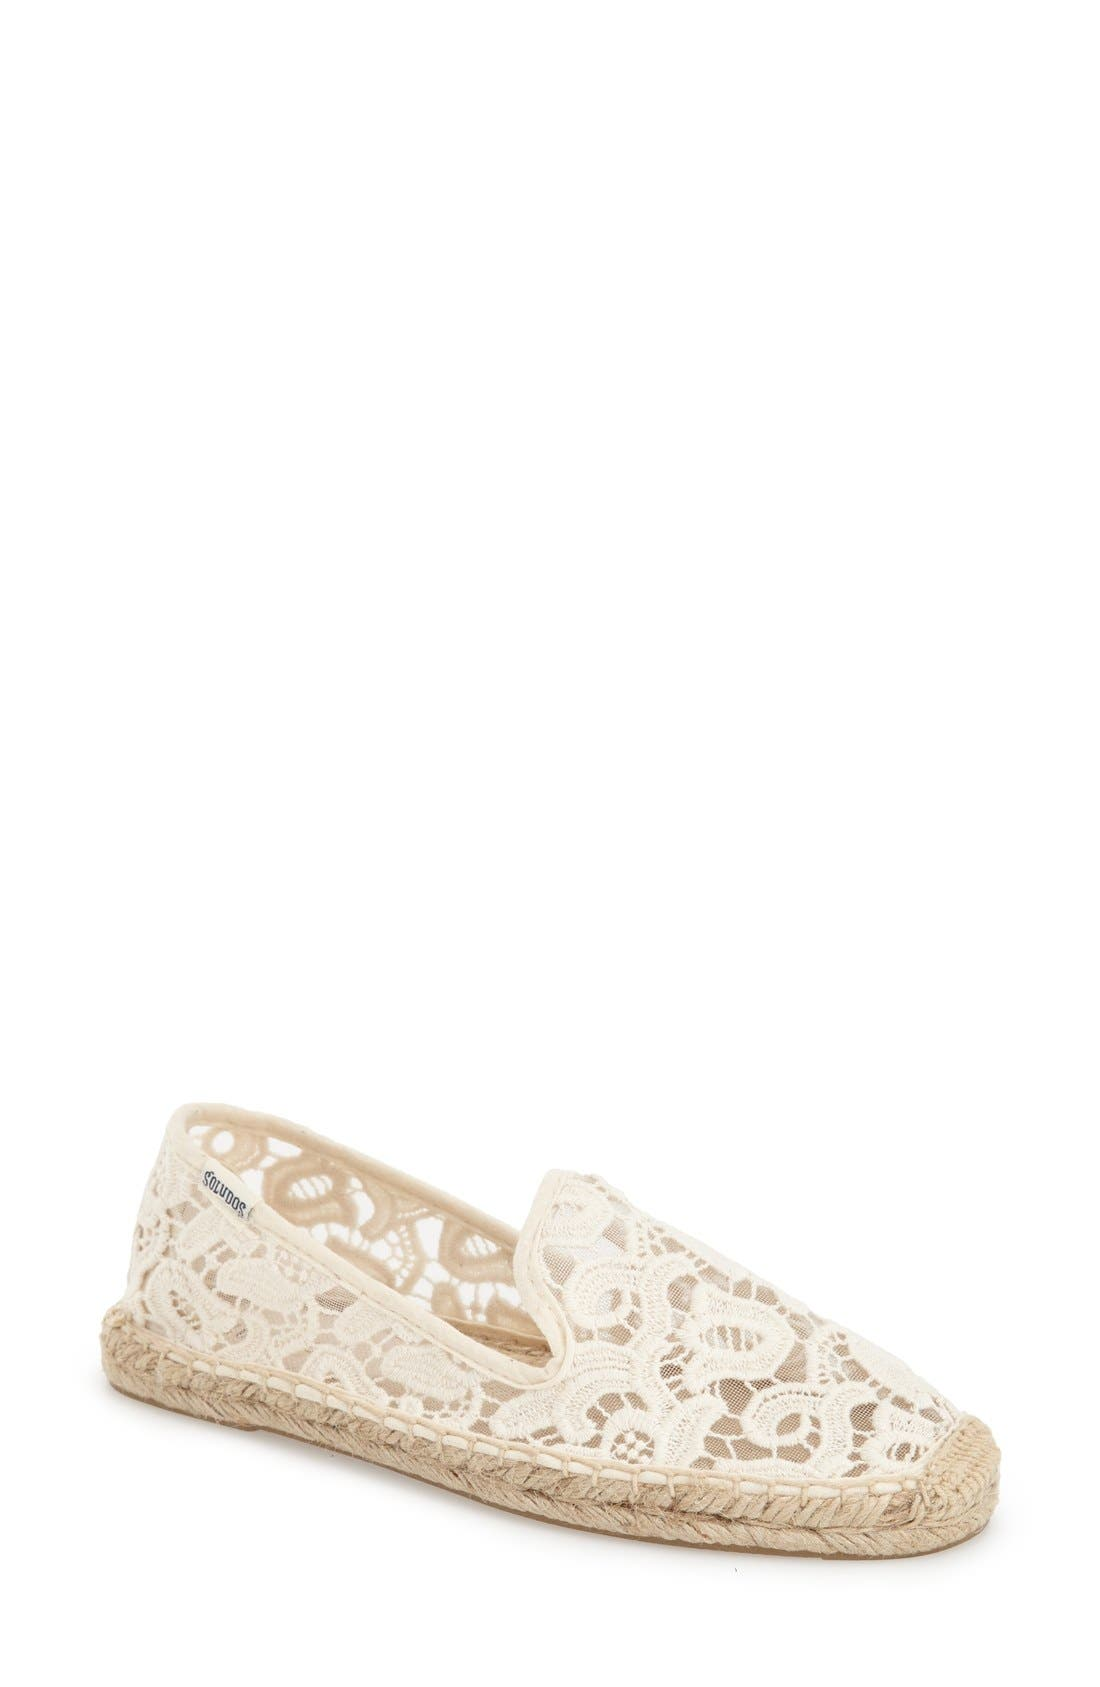 Soludos Lace Espadrille Slip-On (Women)